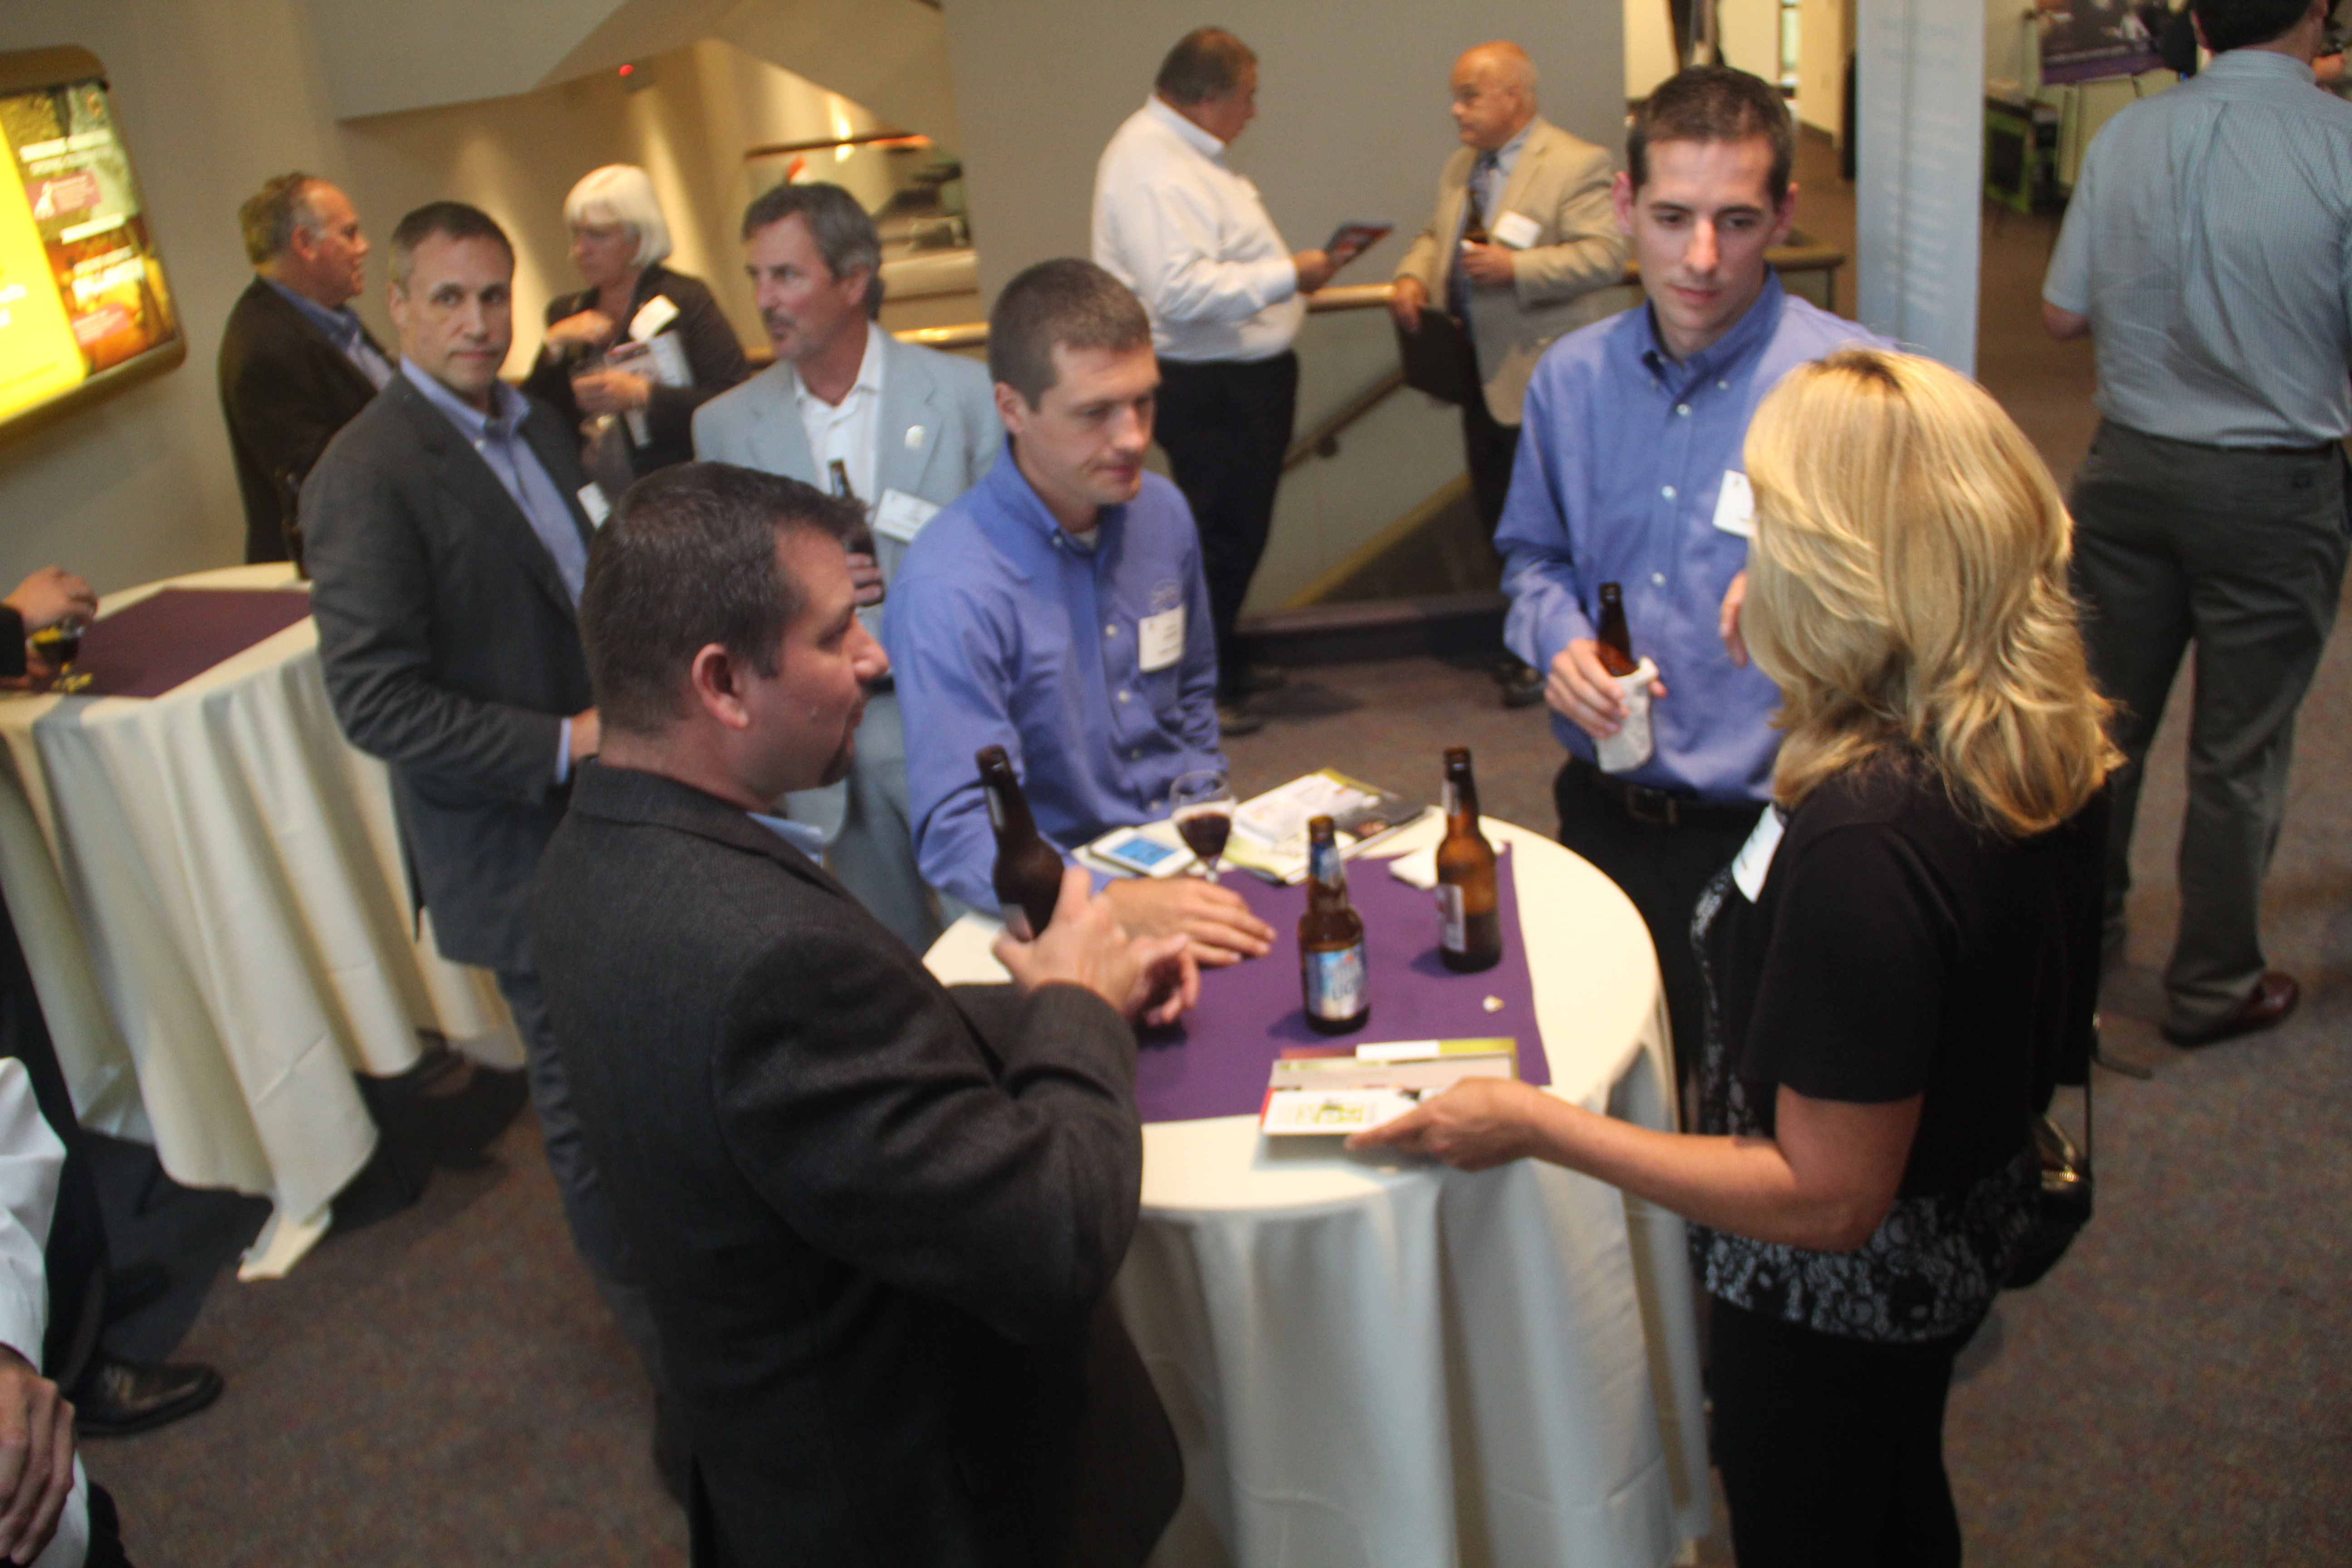 Attendees network after the meeting at the Rochester Museum and Science Center